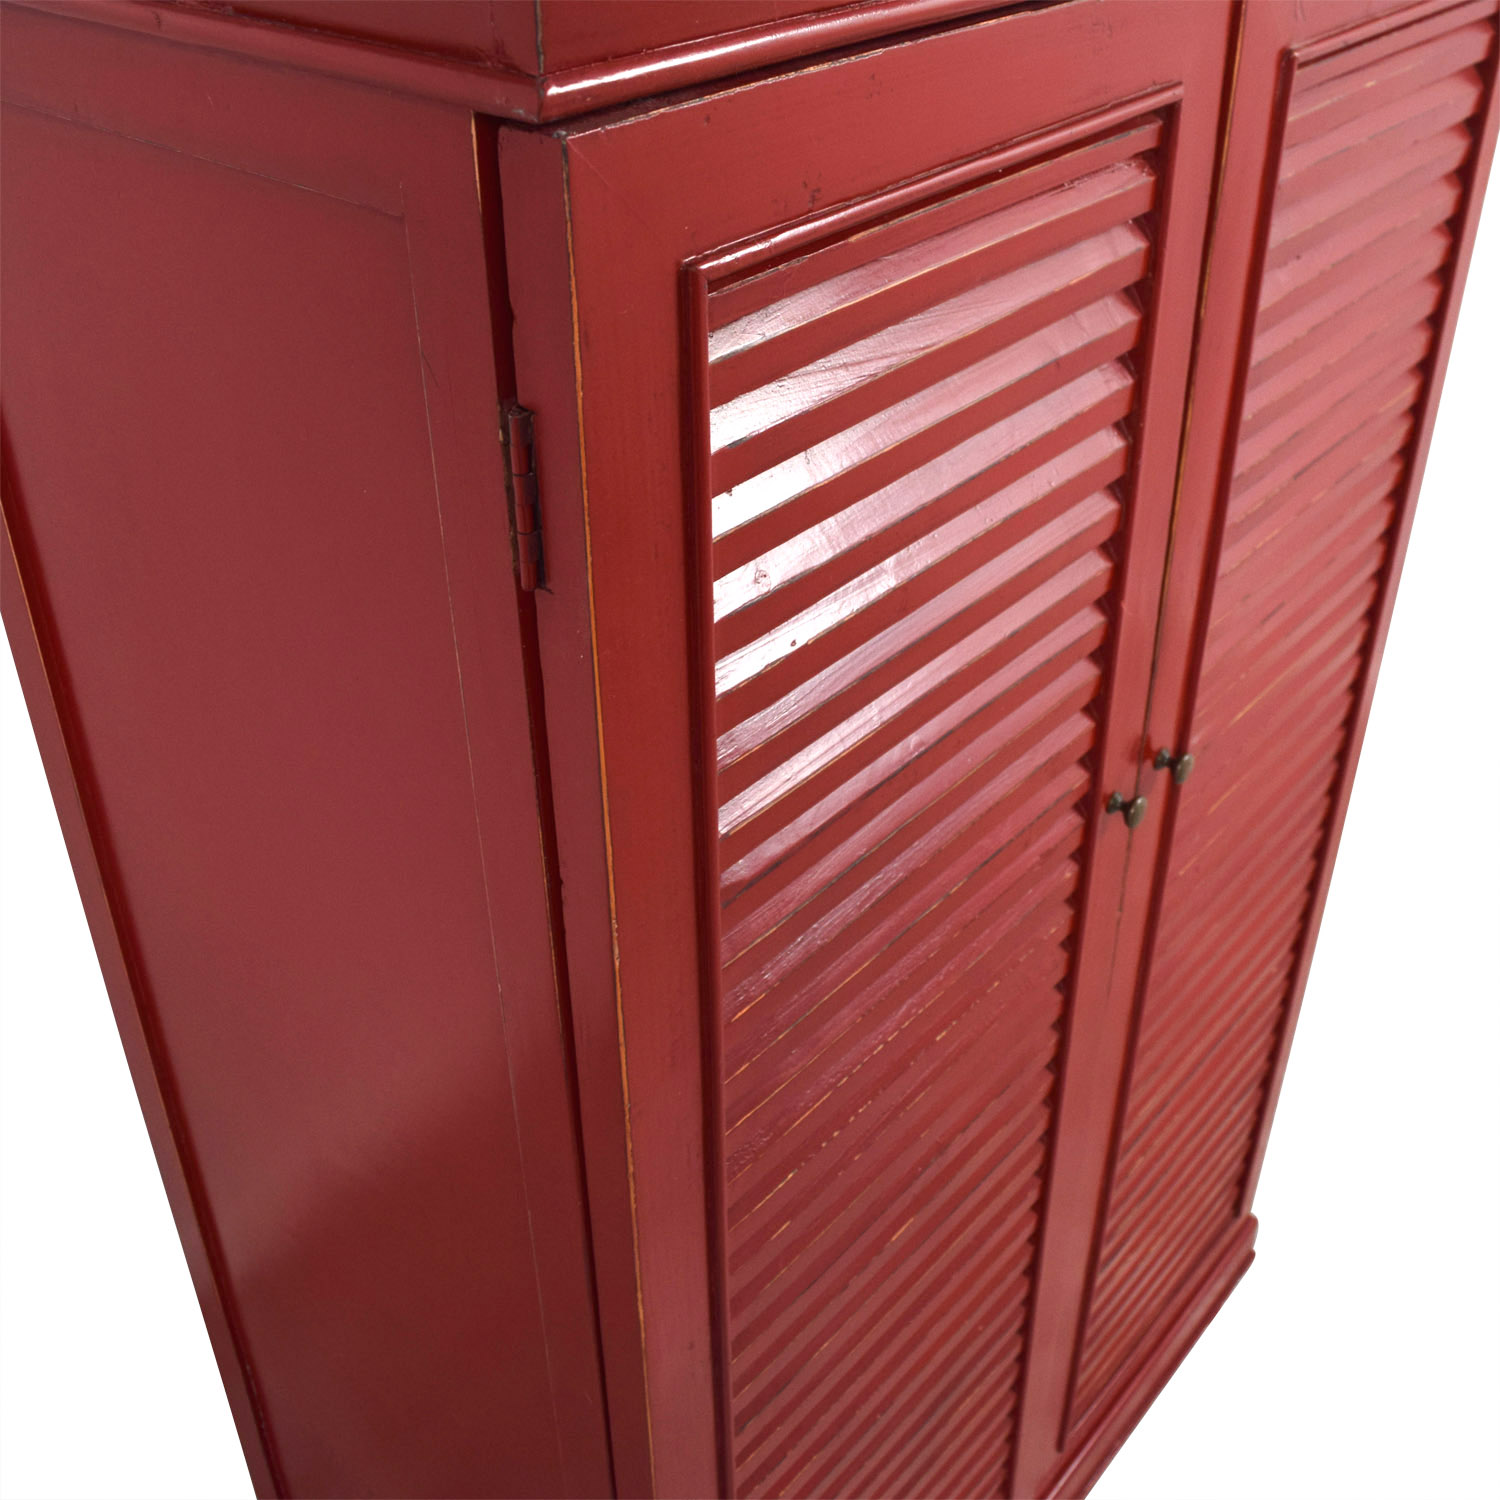 ... Shop Red Armoire With Interior Shelving Storage ...